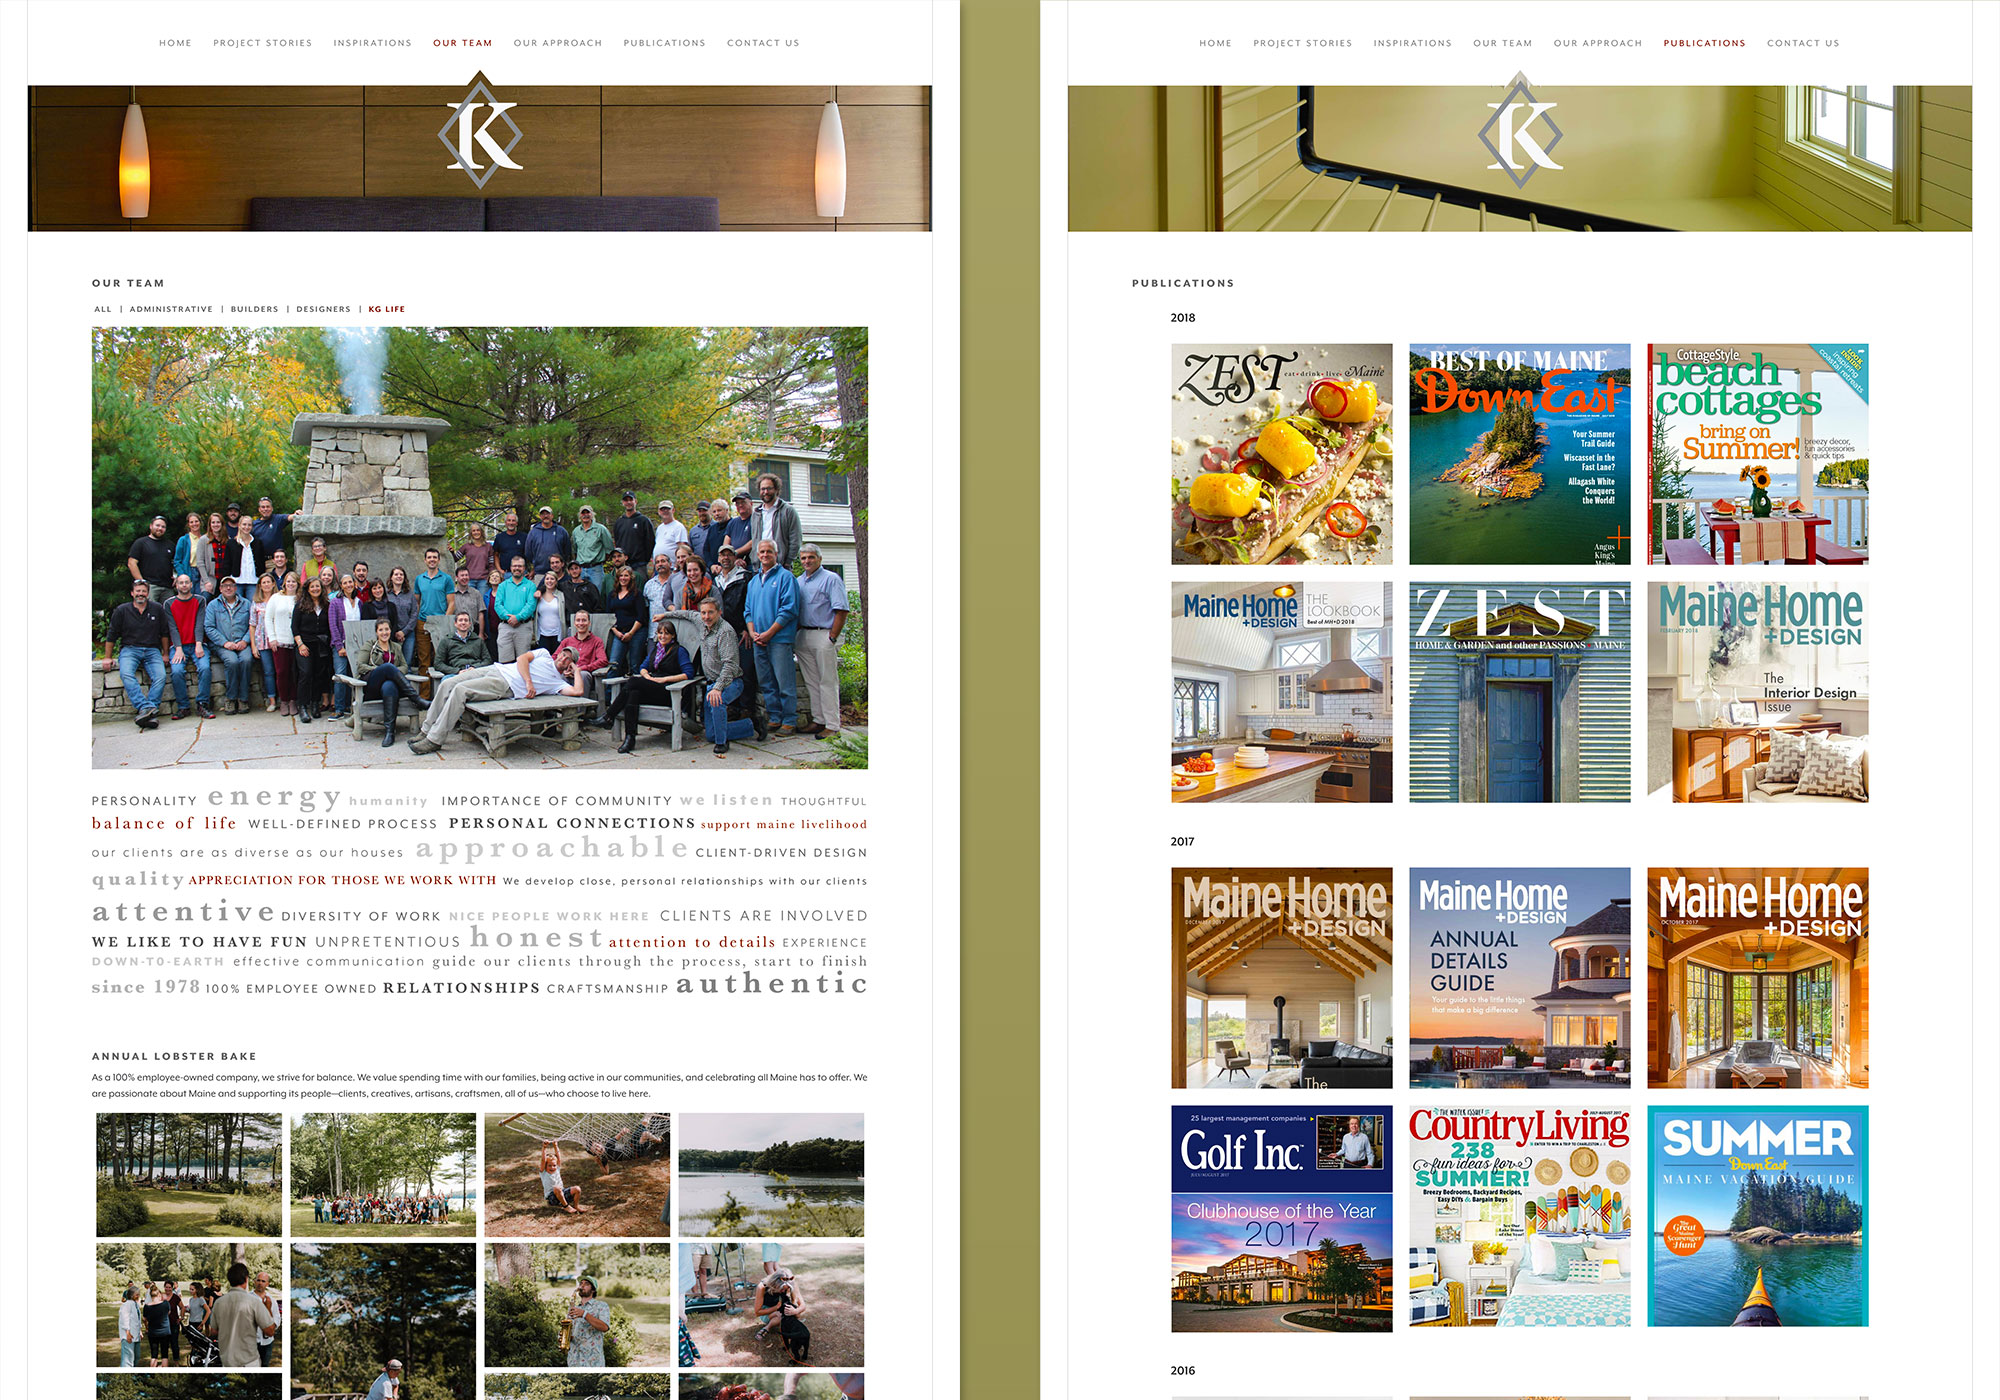 KG Life Blog and Publications. Two scalable sections of the website for Knickerbocker Group by SlickFish Studios, a custom website design company in Portland, Maine.